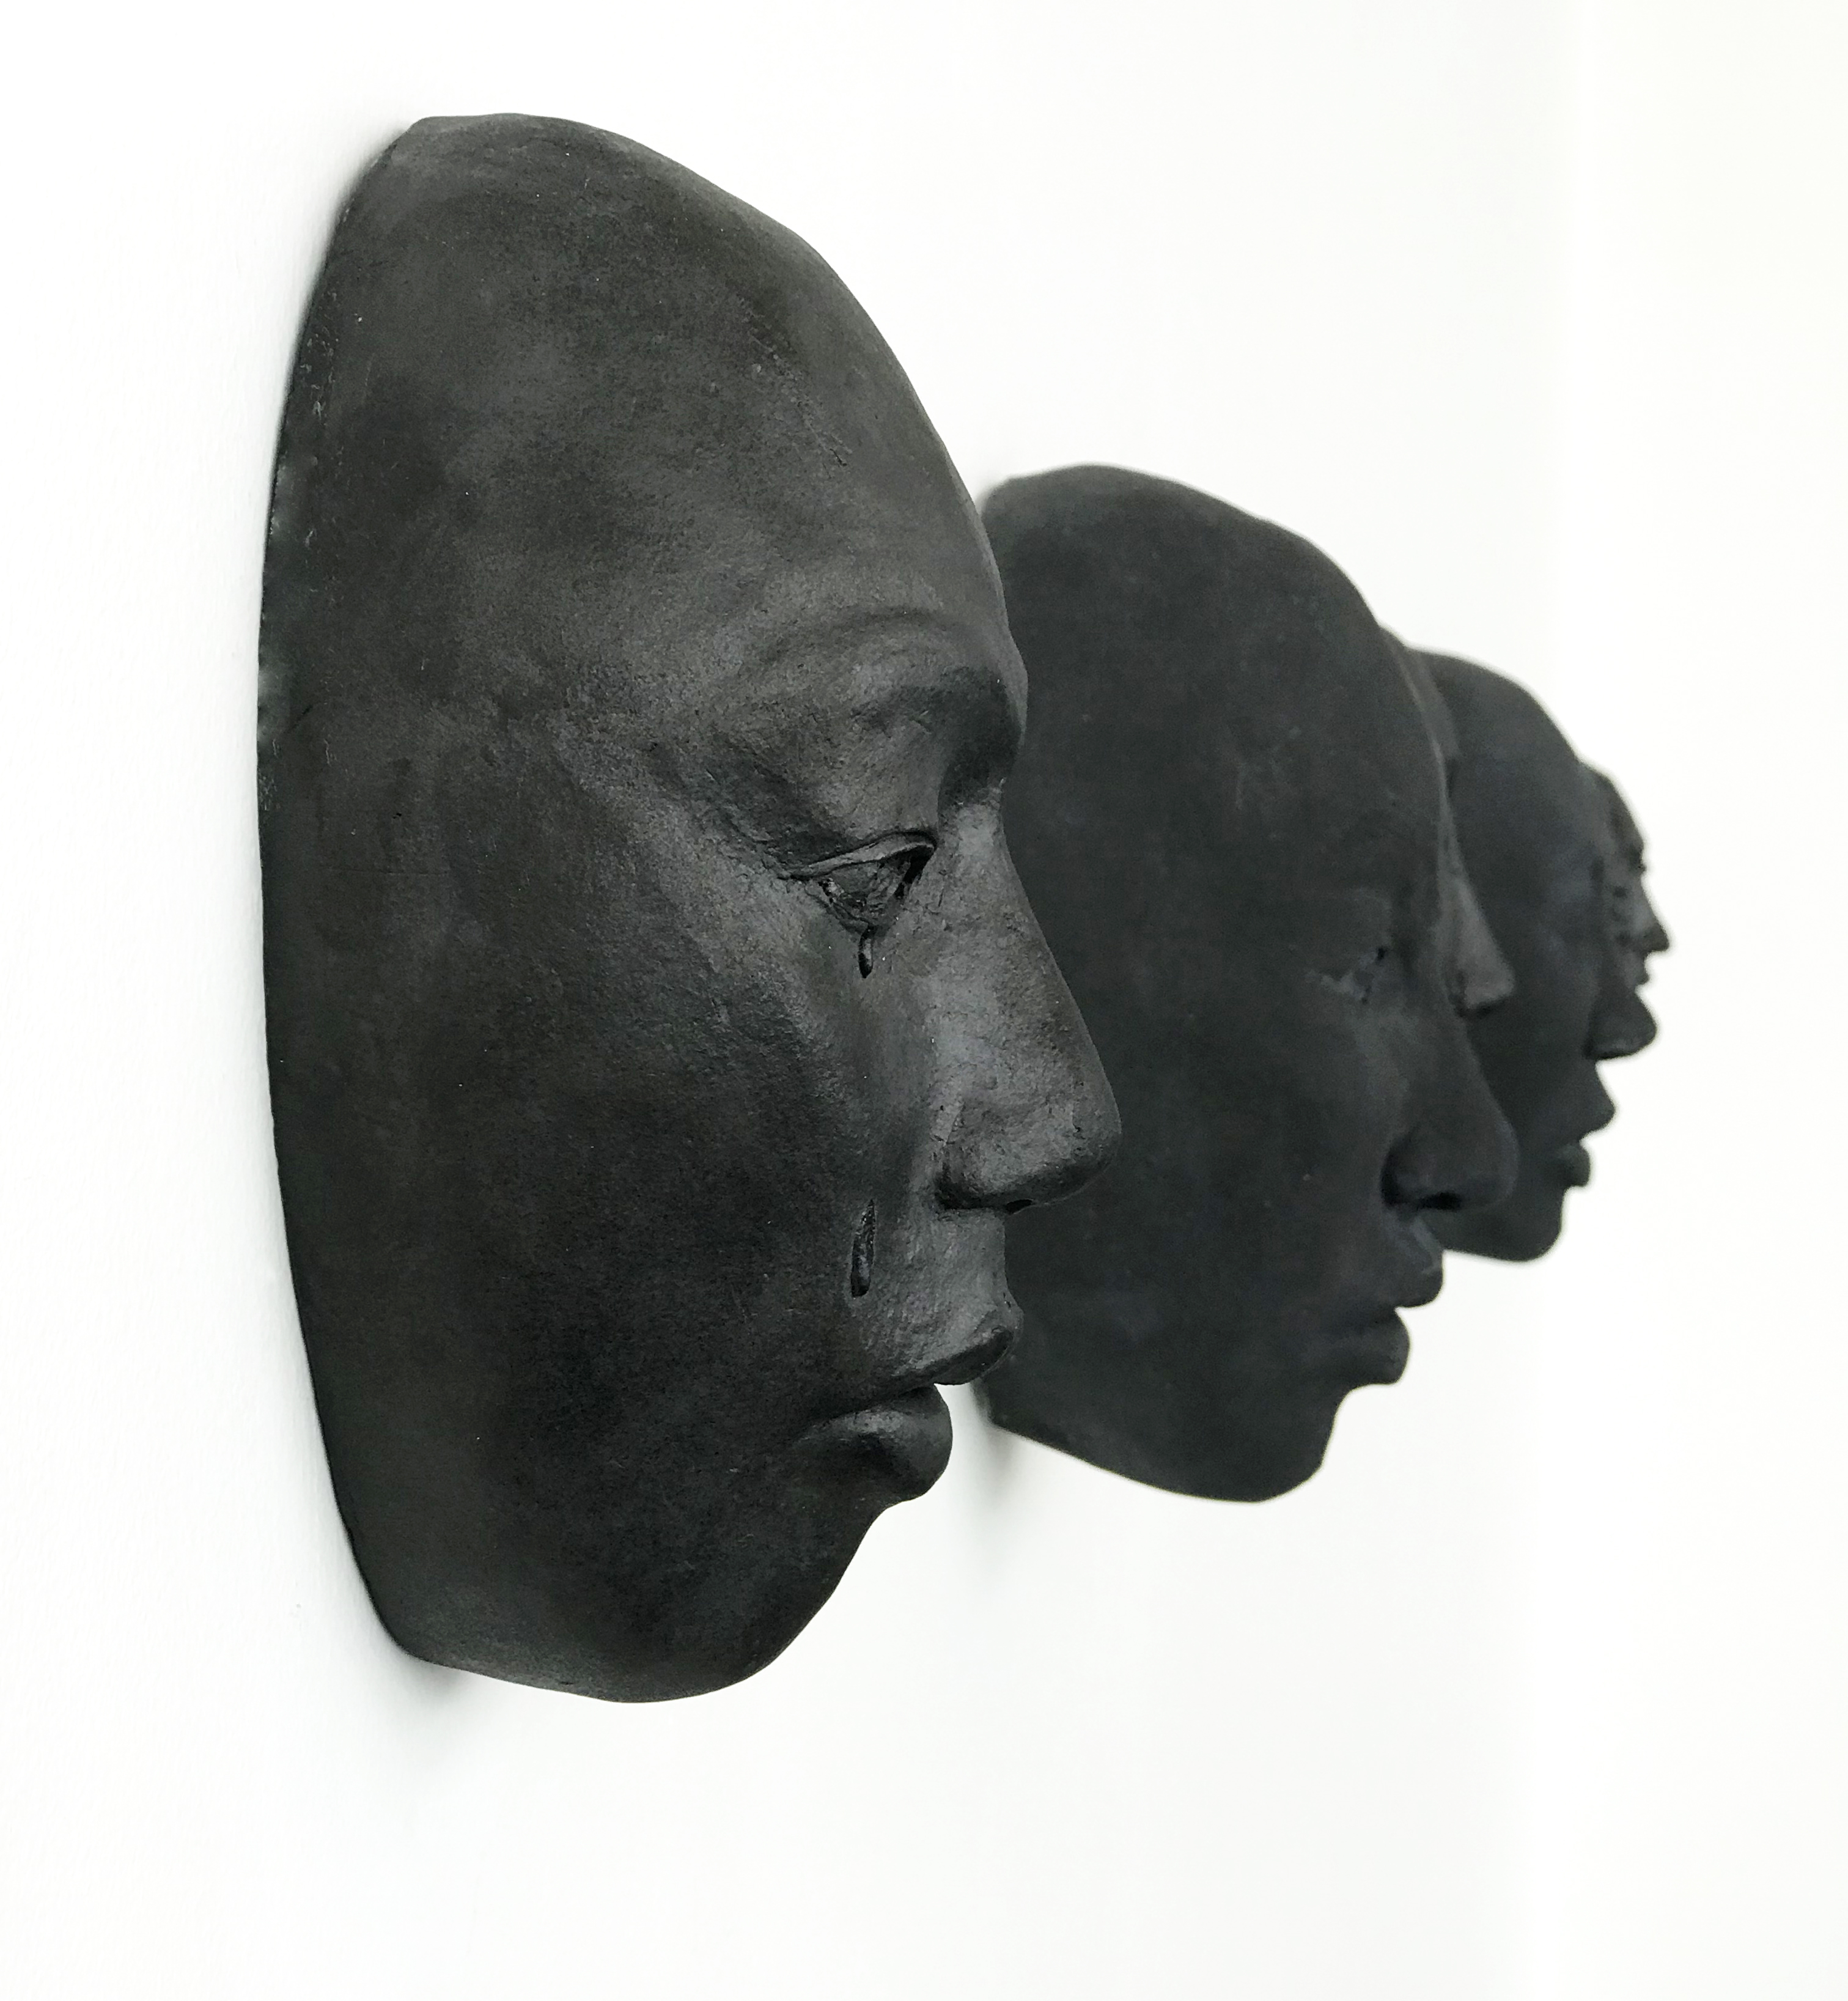 the profile of an in focus black ceramic face mounted on a white wall, with a somber facial expression and tears falling from open eyes; and the profiles of similar out of focus, black ceramic faces in the background.